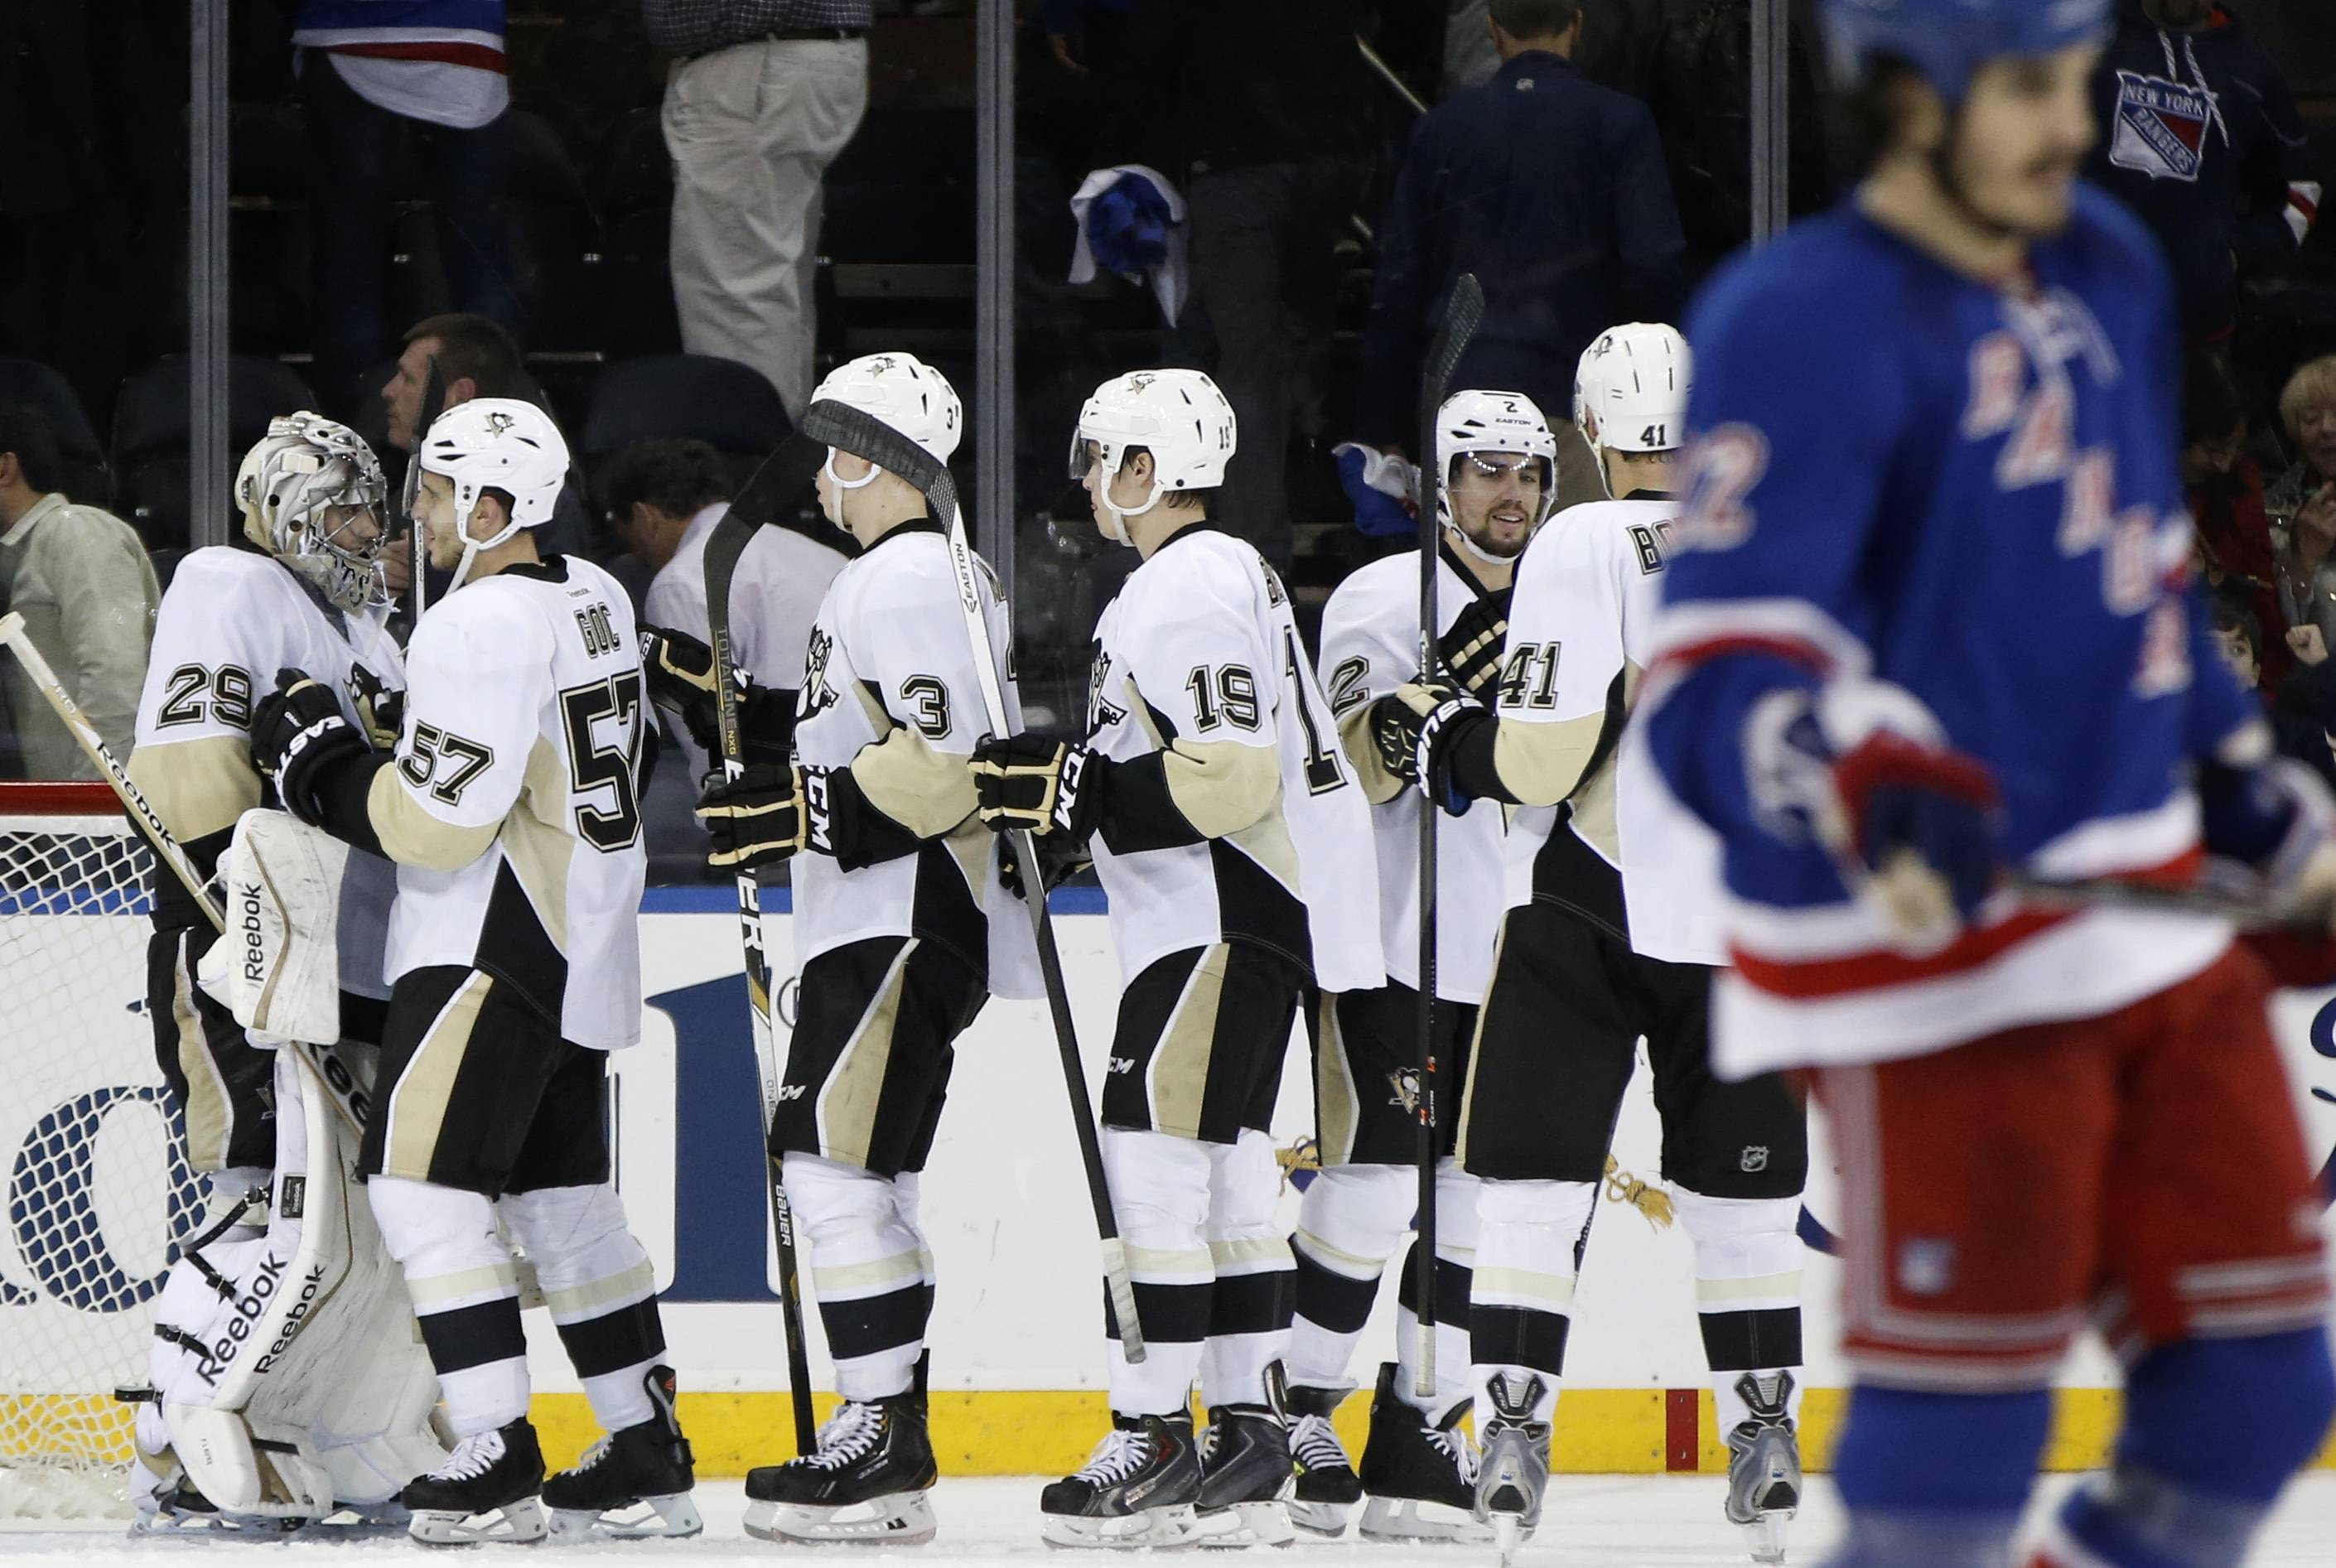 Teammates line up to congratulate Pittsburgh Penguins goalie Marc-Andre Fleury (29), far left, after the Penguins shut out the New York Rangers in their second-round NHL Stanley Cup hockey playoff game at Madison Square Garden in New York, Monday, May 5, 2014.  The Penguins lead the series 2-1. New York Rangers center Brian Boyle (22) leaves the ice, far right.